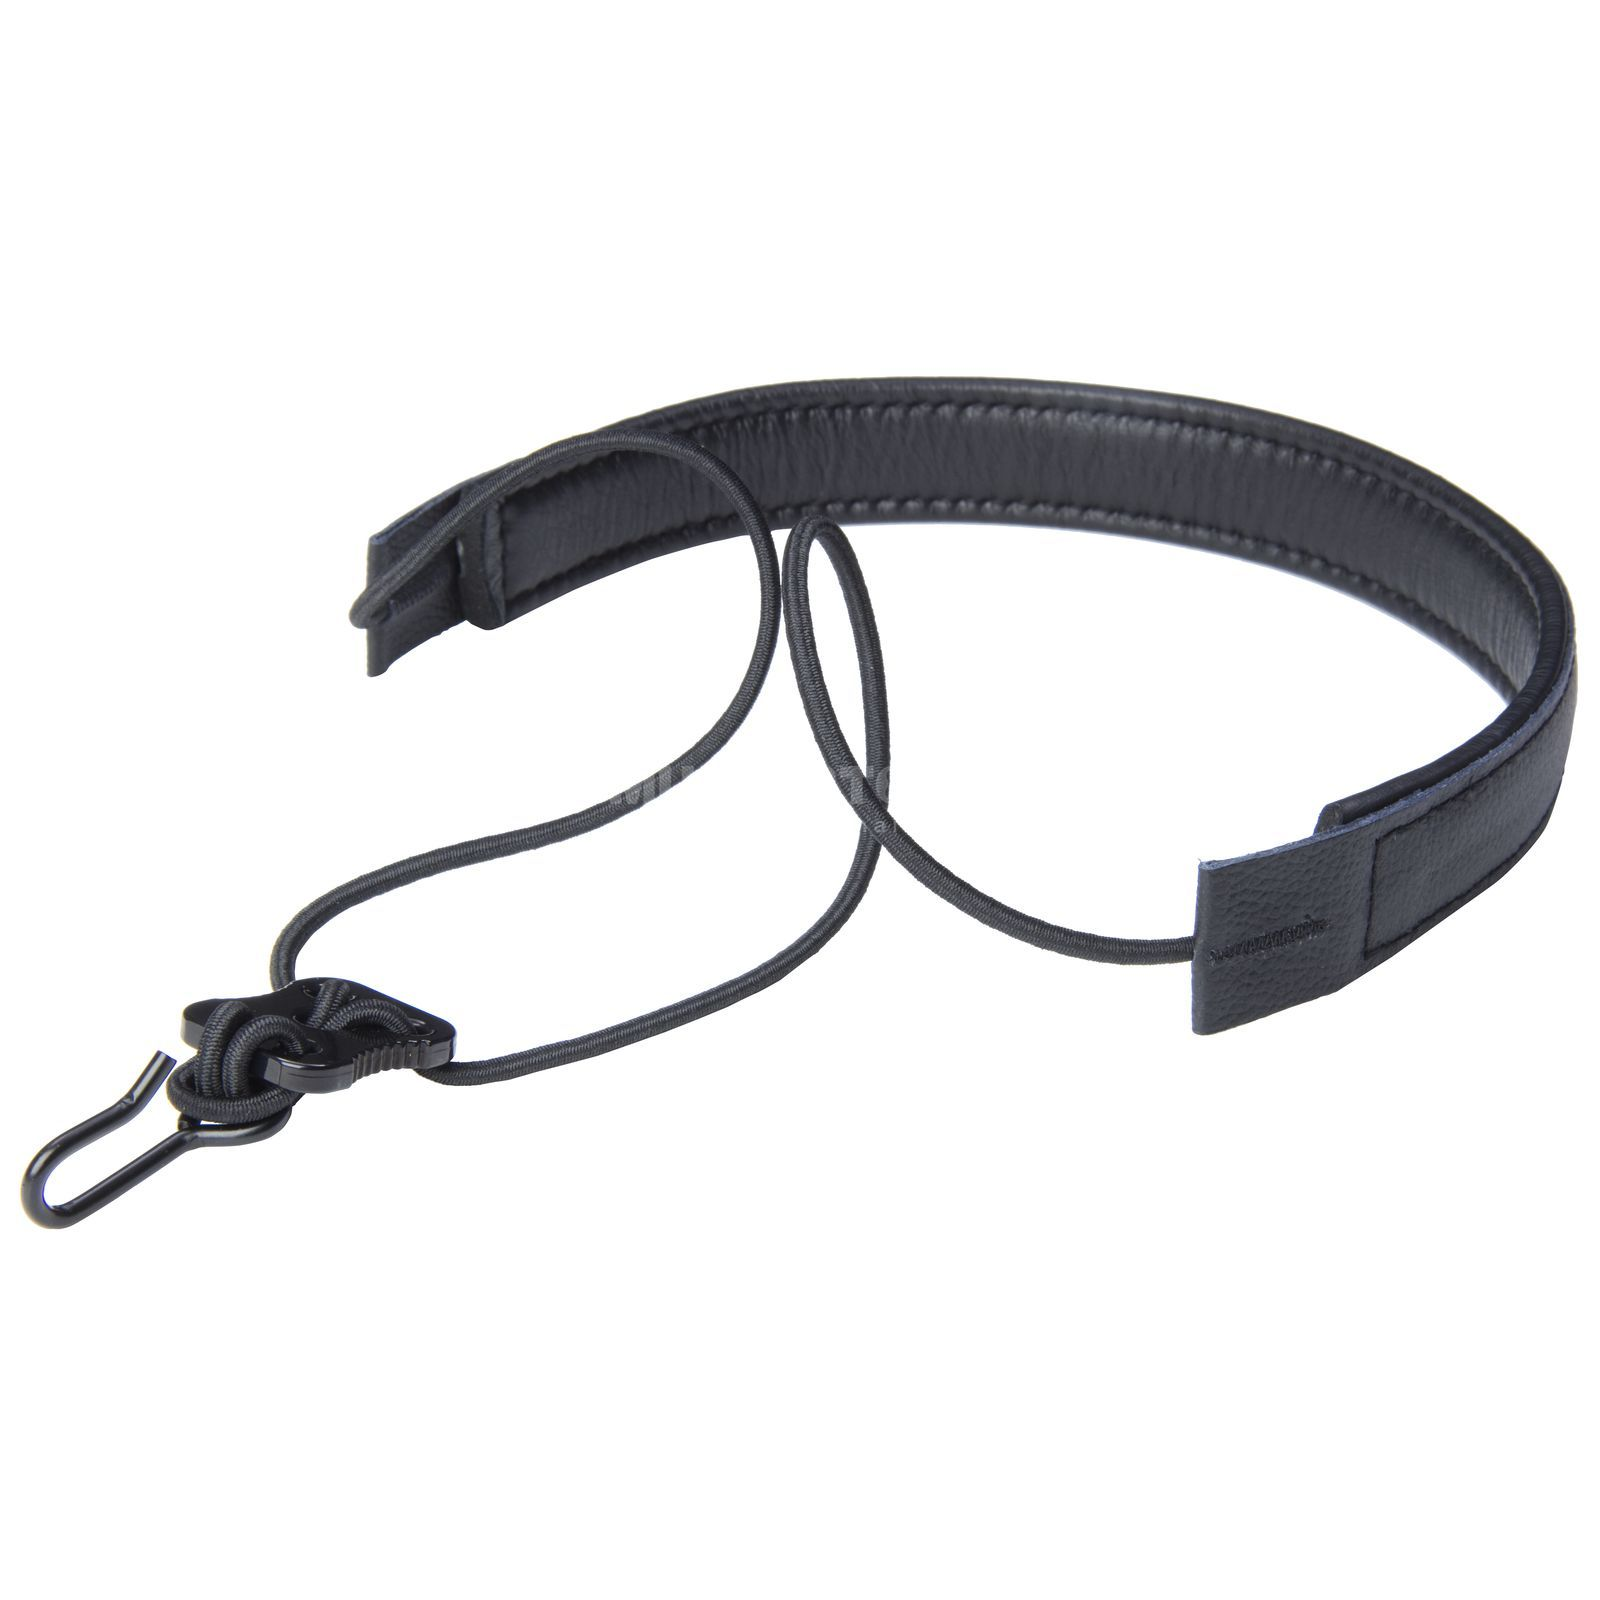 Monzani Elastic Strap f. Clarinet Cow Leather, Black Product Image